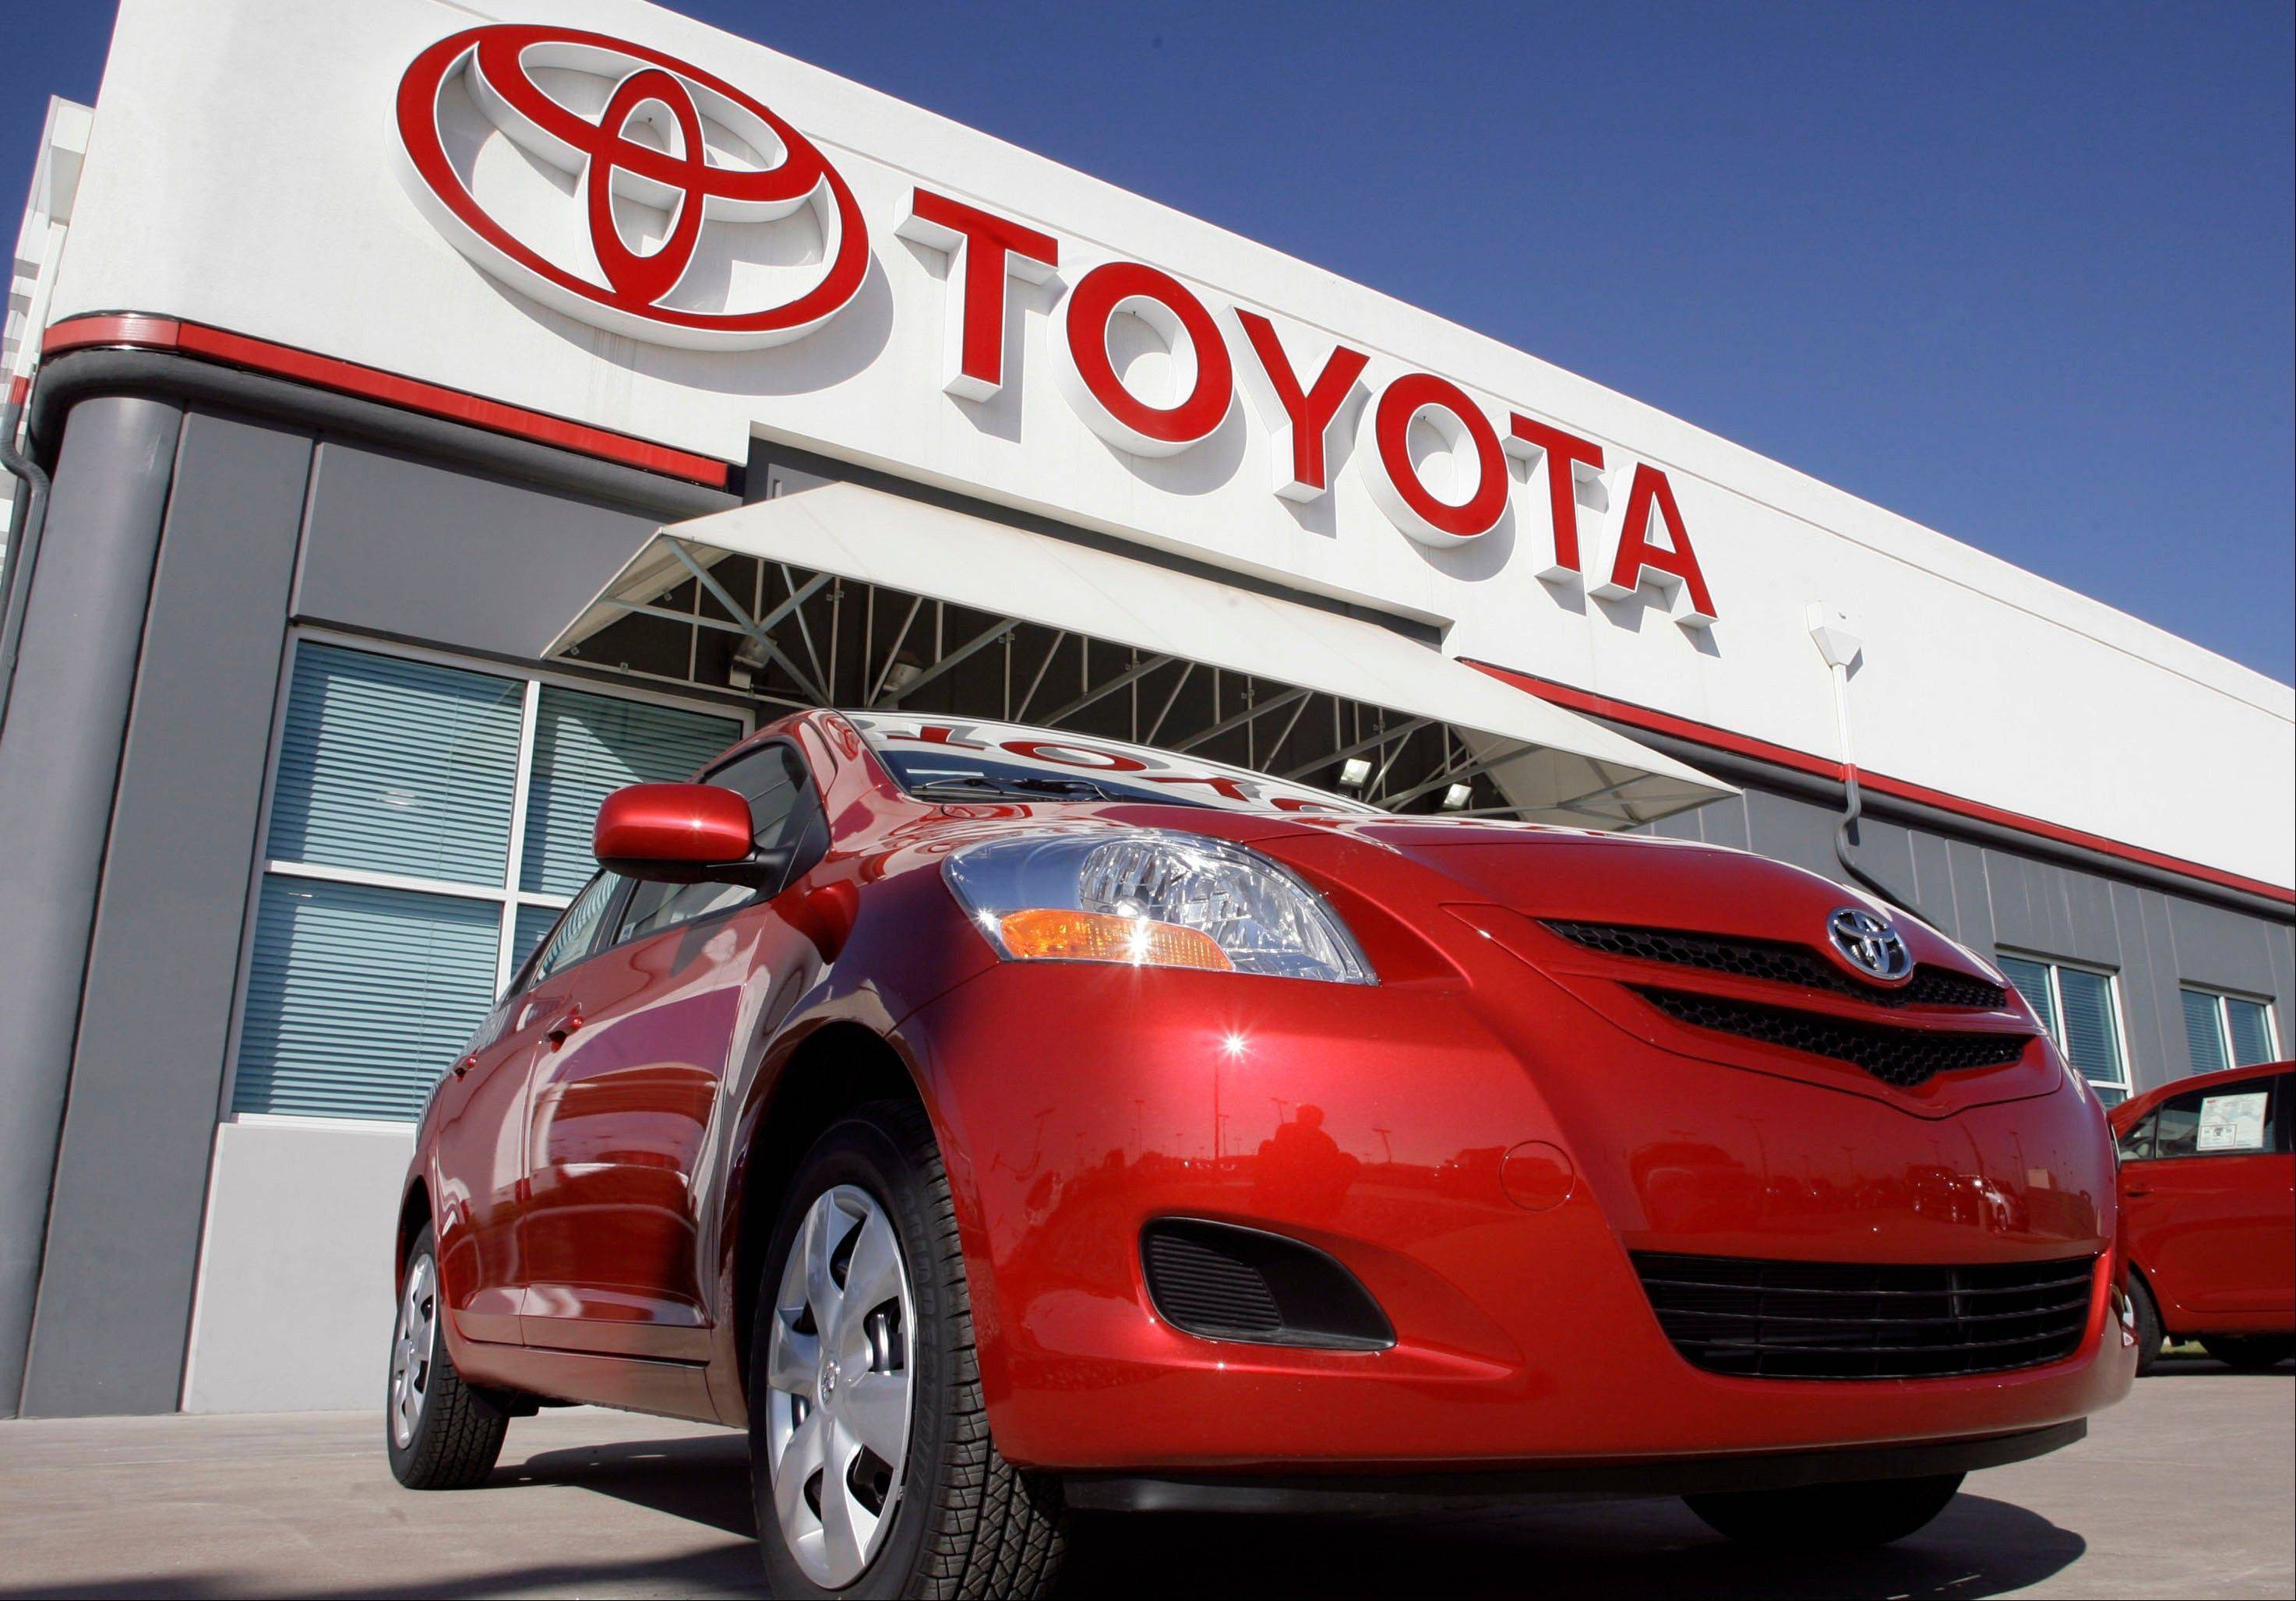 Toyota Motor Corp. is recalling 7.43 million vehicles in the U.S., Japan, Europe and elsewhere around the world for a faulty power-window switch -- the latest, massive quality woes for Japan's top automaker. The recall, announced Wednesday, Oct. 10, 2012 affects more than a dozen models produced from 2005 through 2010.